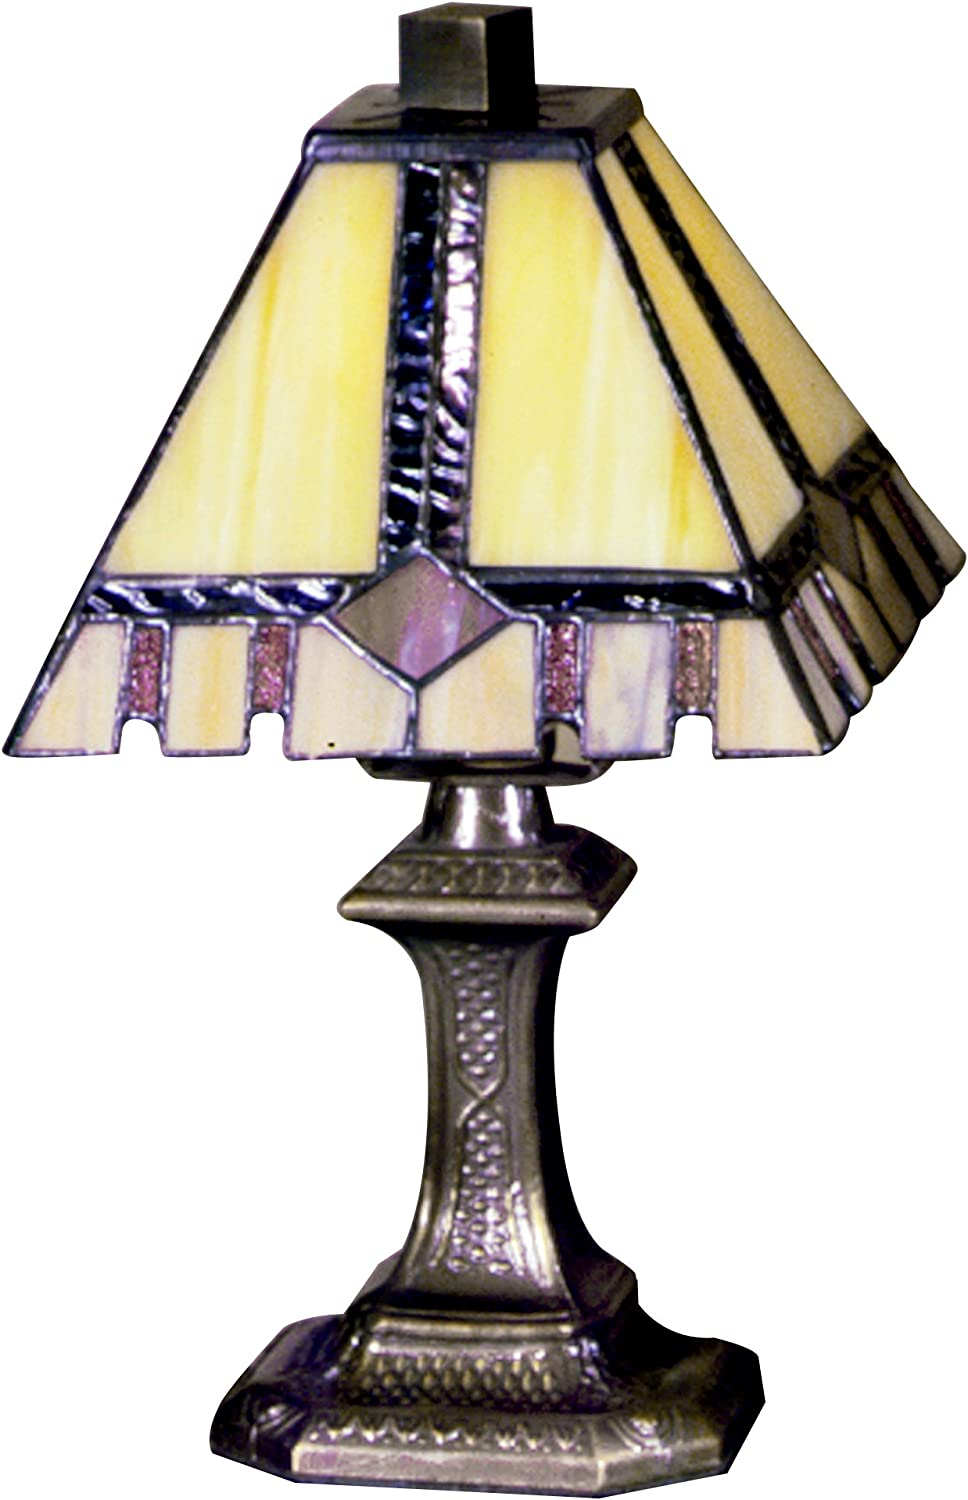 Dale Tiffany TA100351 Mica 2021 spring and summer new One Tucson Mall Light Lamp Accent f Table